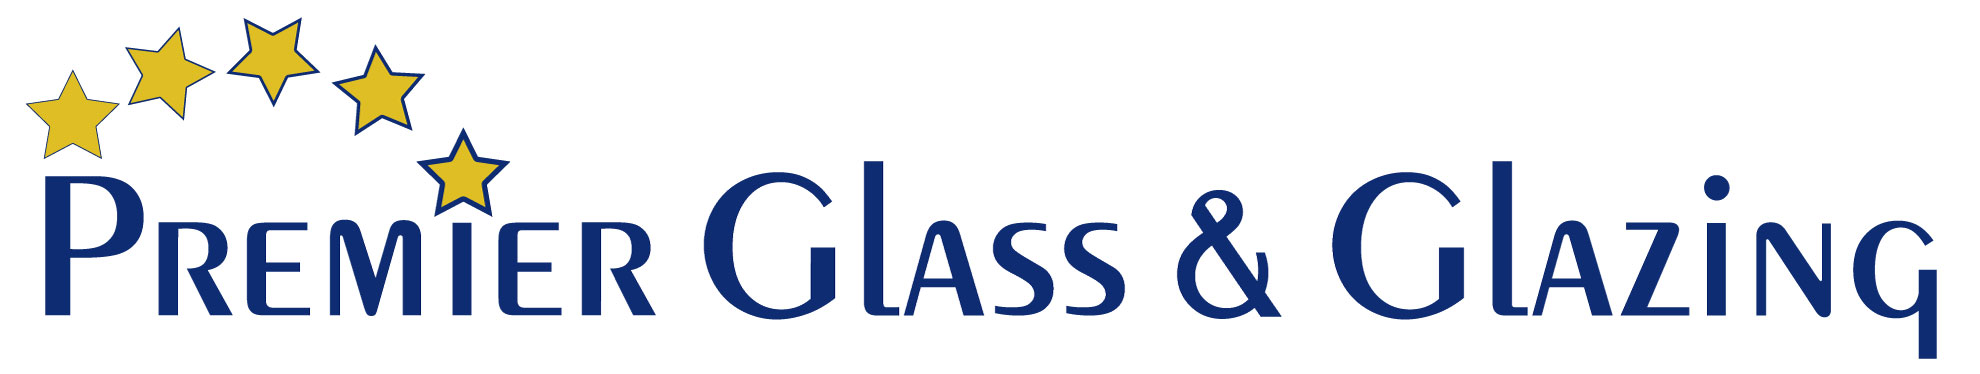 is Premier Glass and Glazing good